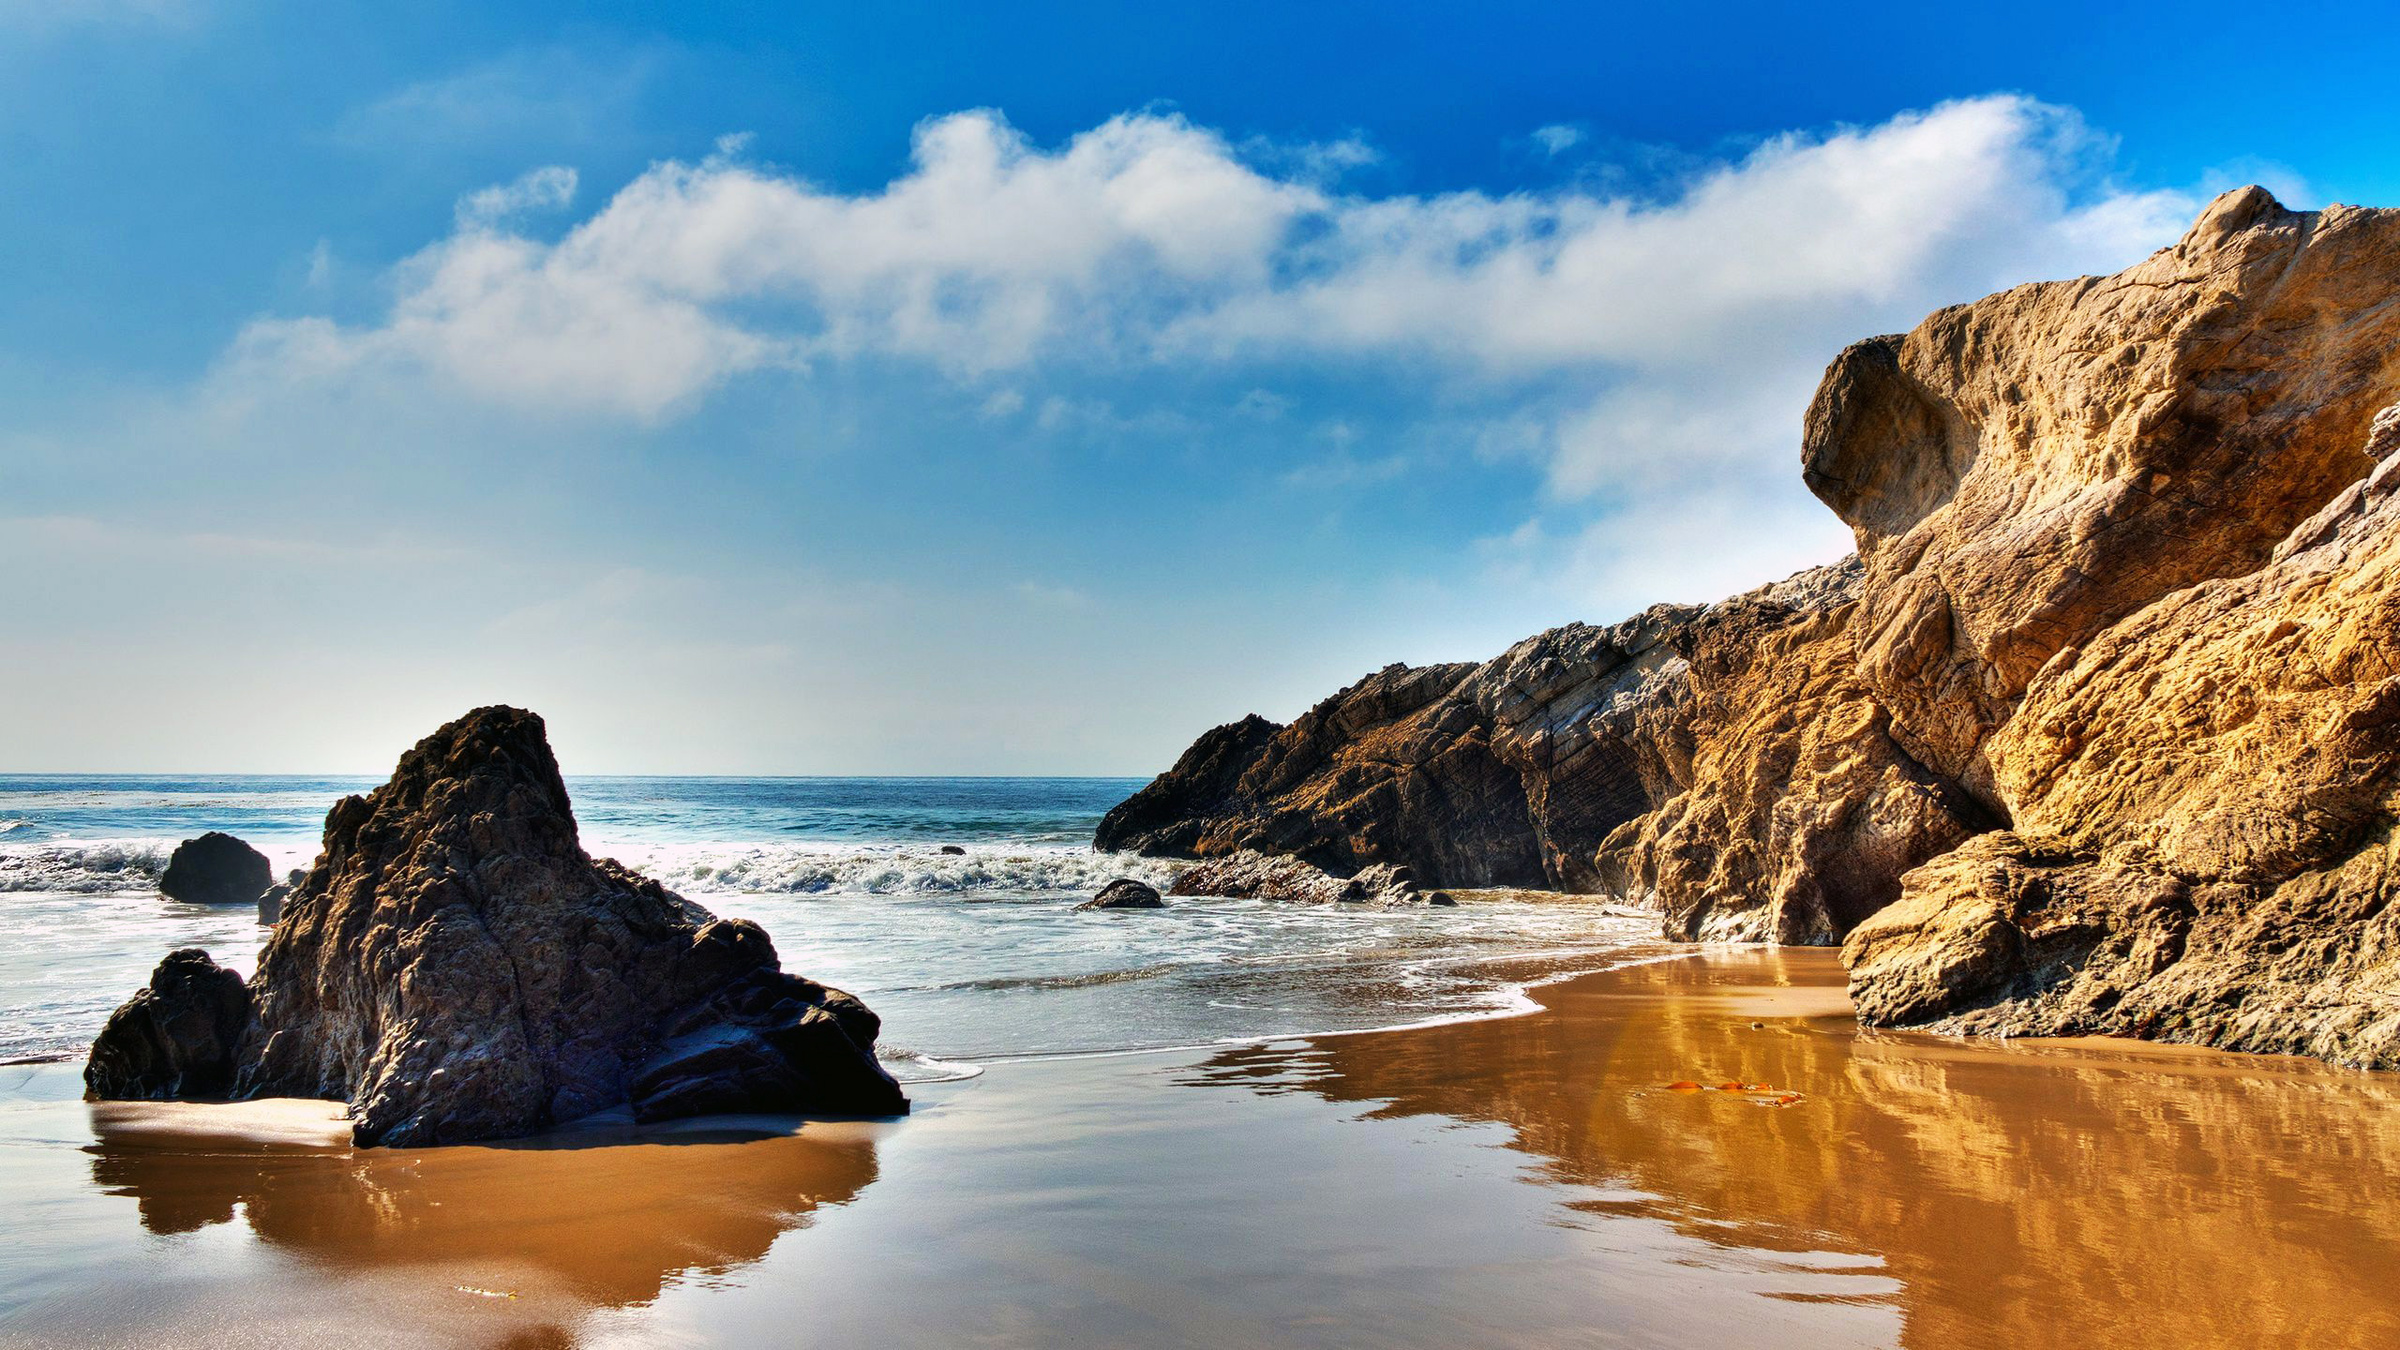 The wallpaper of beach at the Pacific Ocean in Malibu California 2400x1350